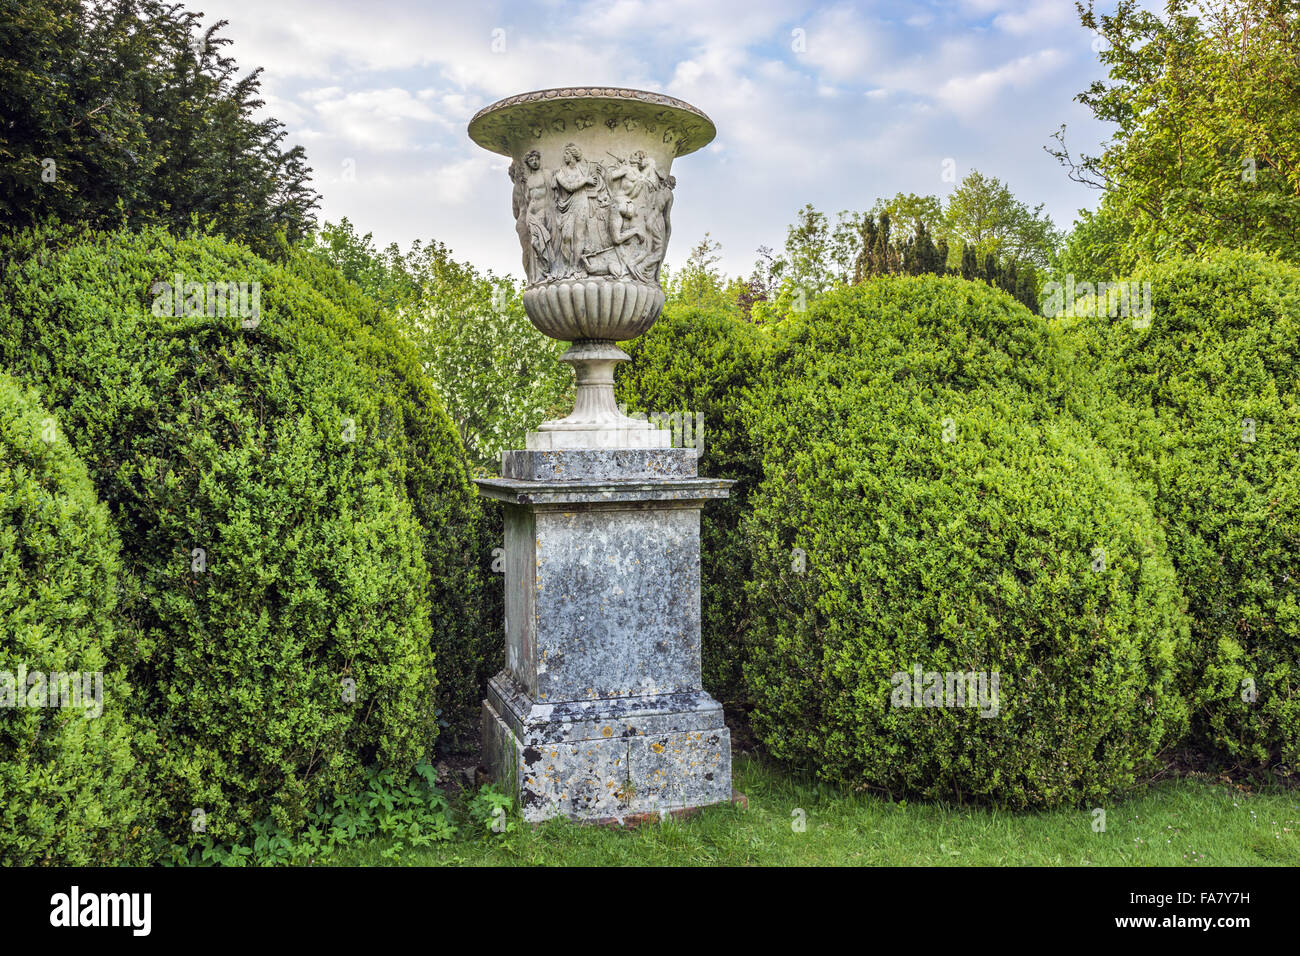 The neatly trimmed hedges and a stone urn in the gardens at Uppark House and Garden, West Sussex - Stock Image